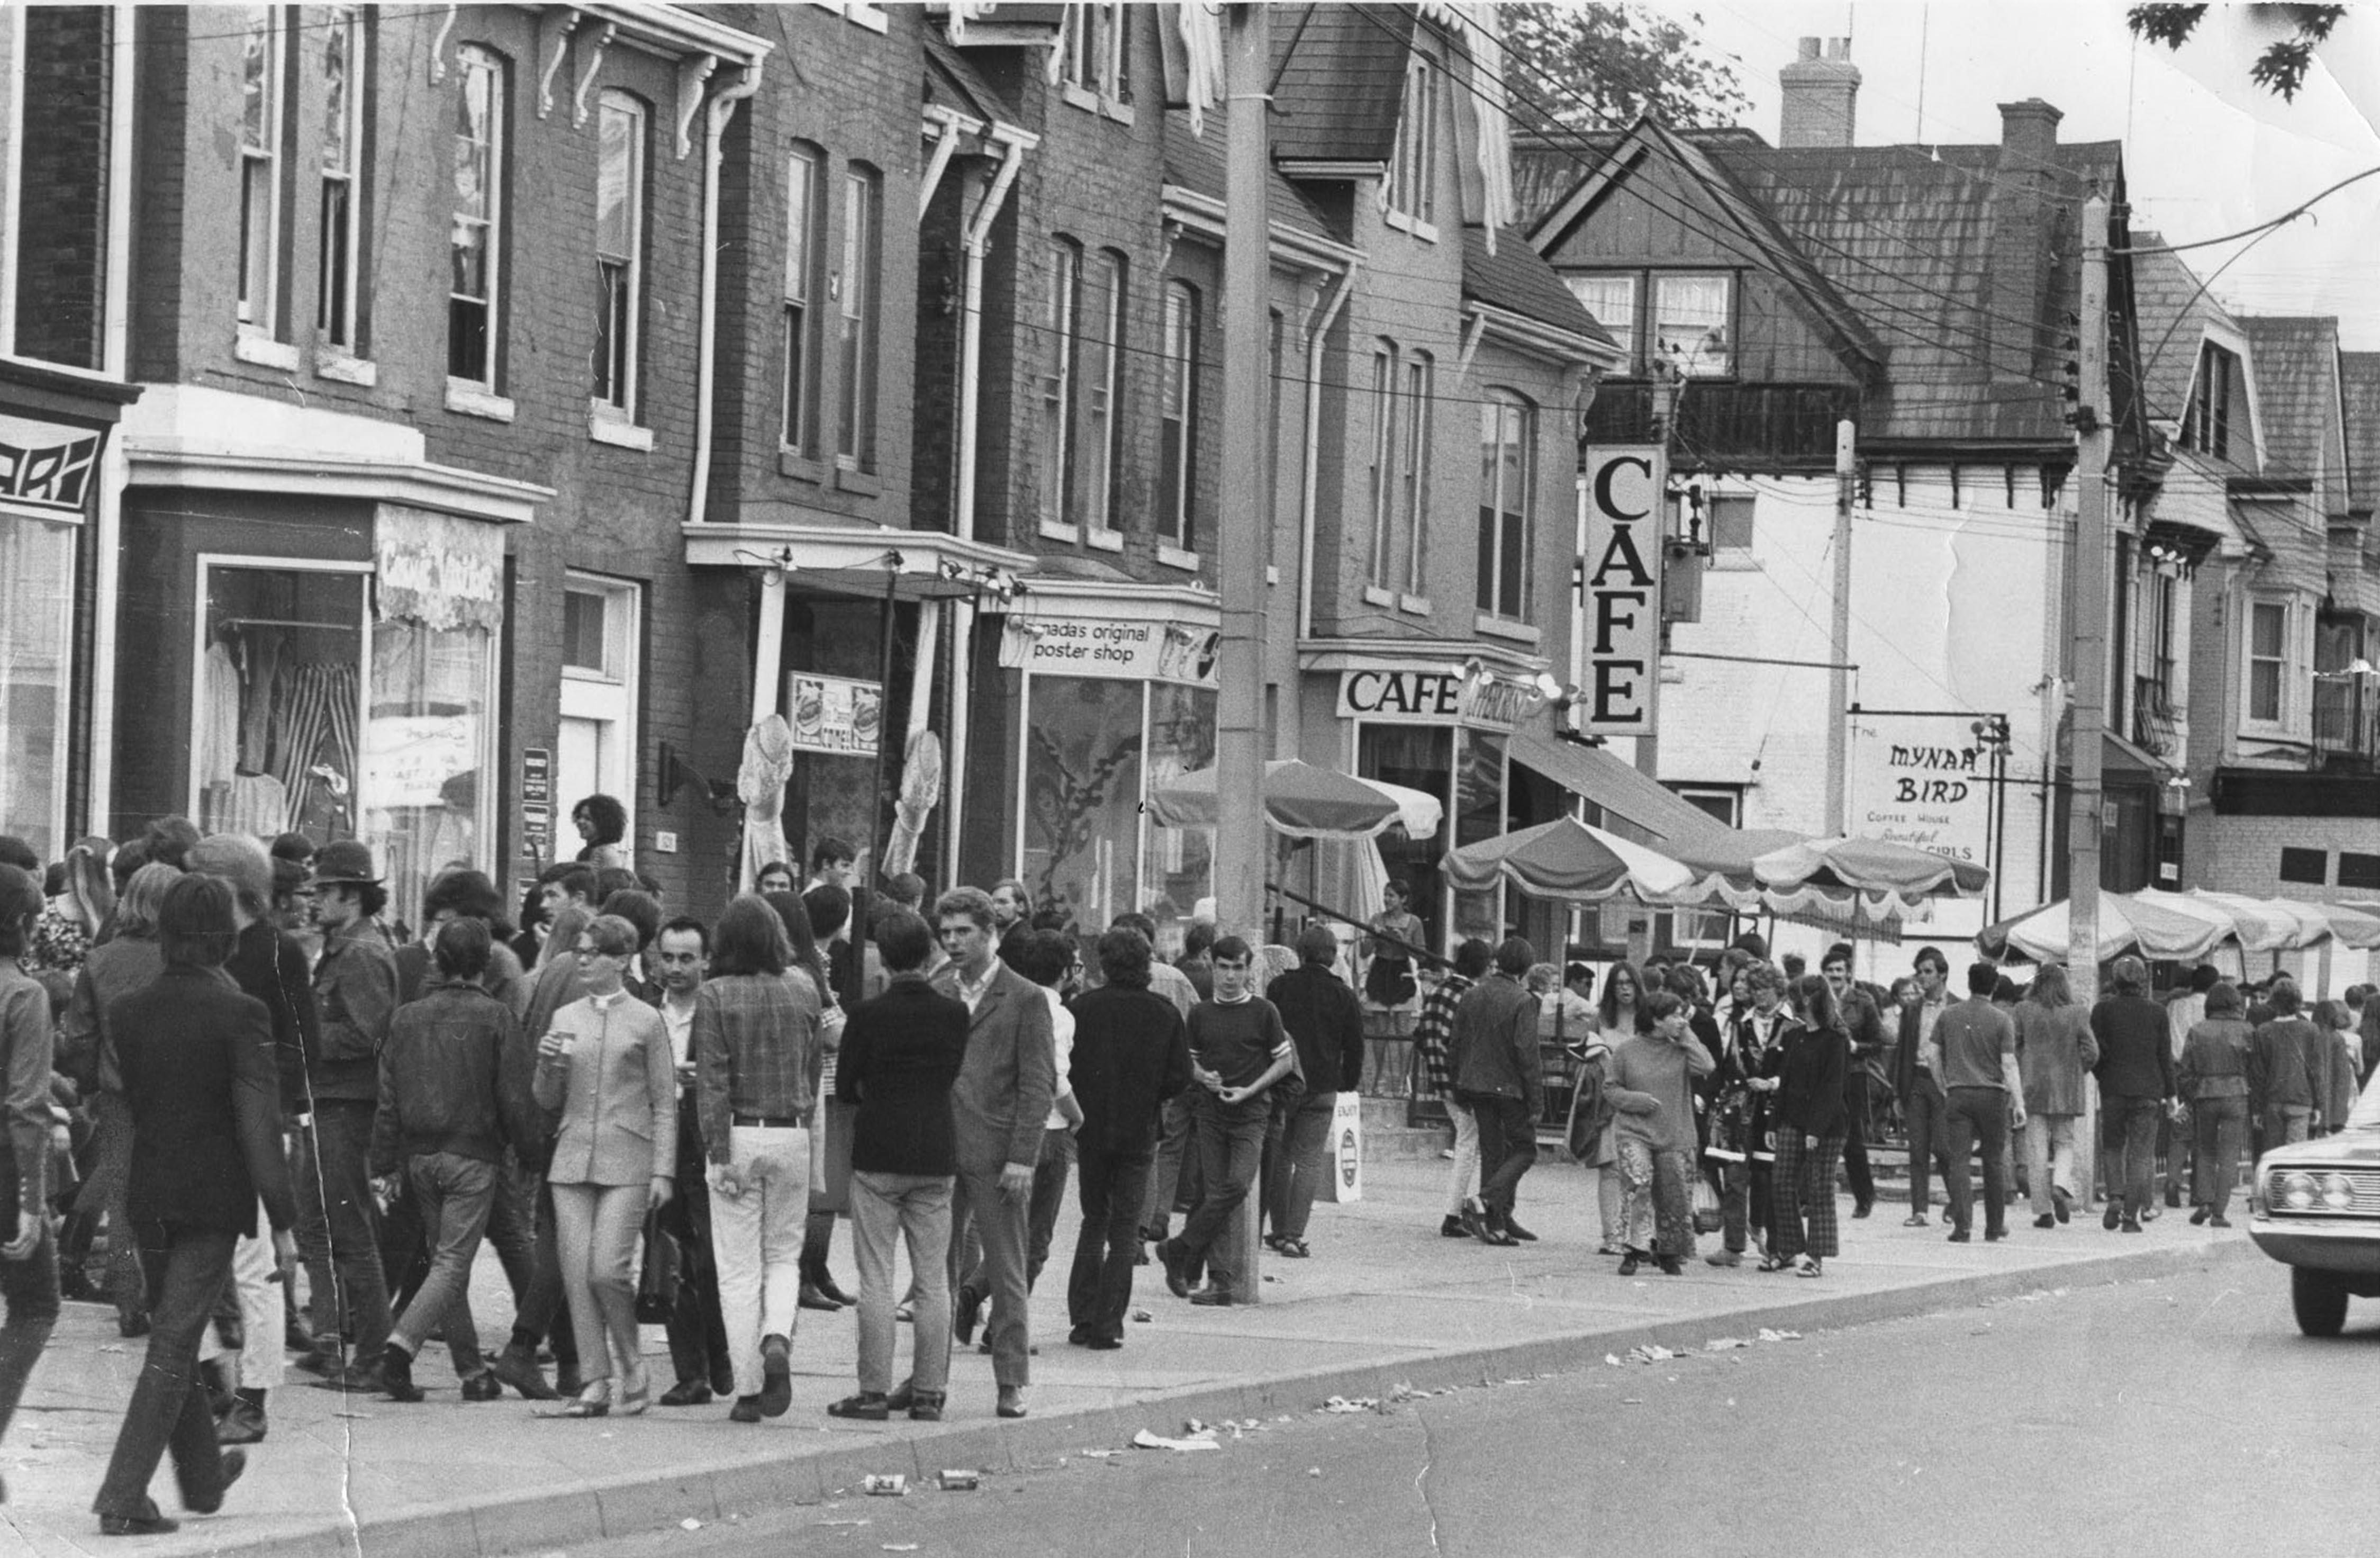 A black and white photograph of a street with large groups of people crowding the sidewalks along Yorkville avenue.